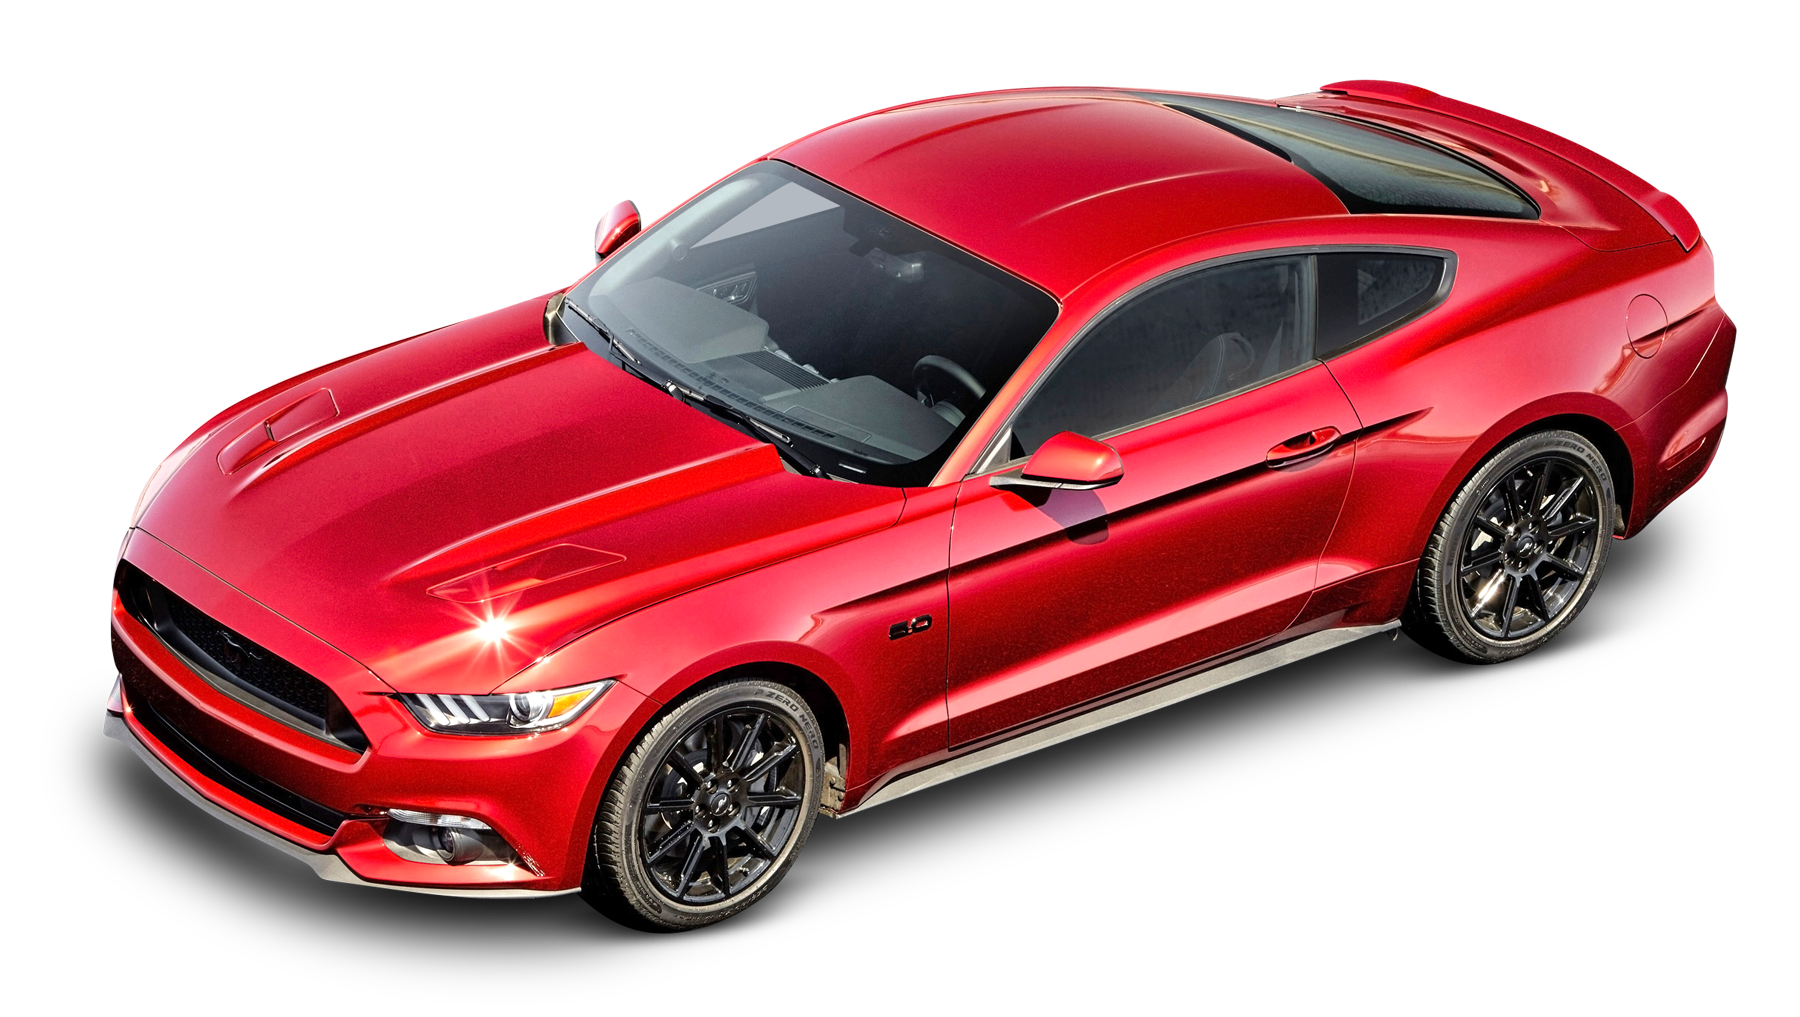 Red Ford Mustang Gt Car Png Image Purepng Free Transparent Cc Png Image Library